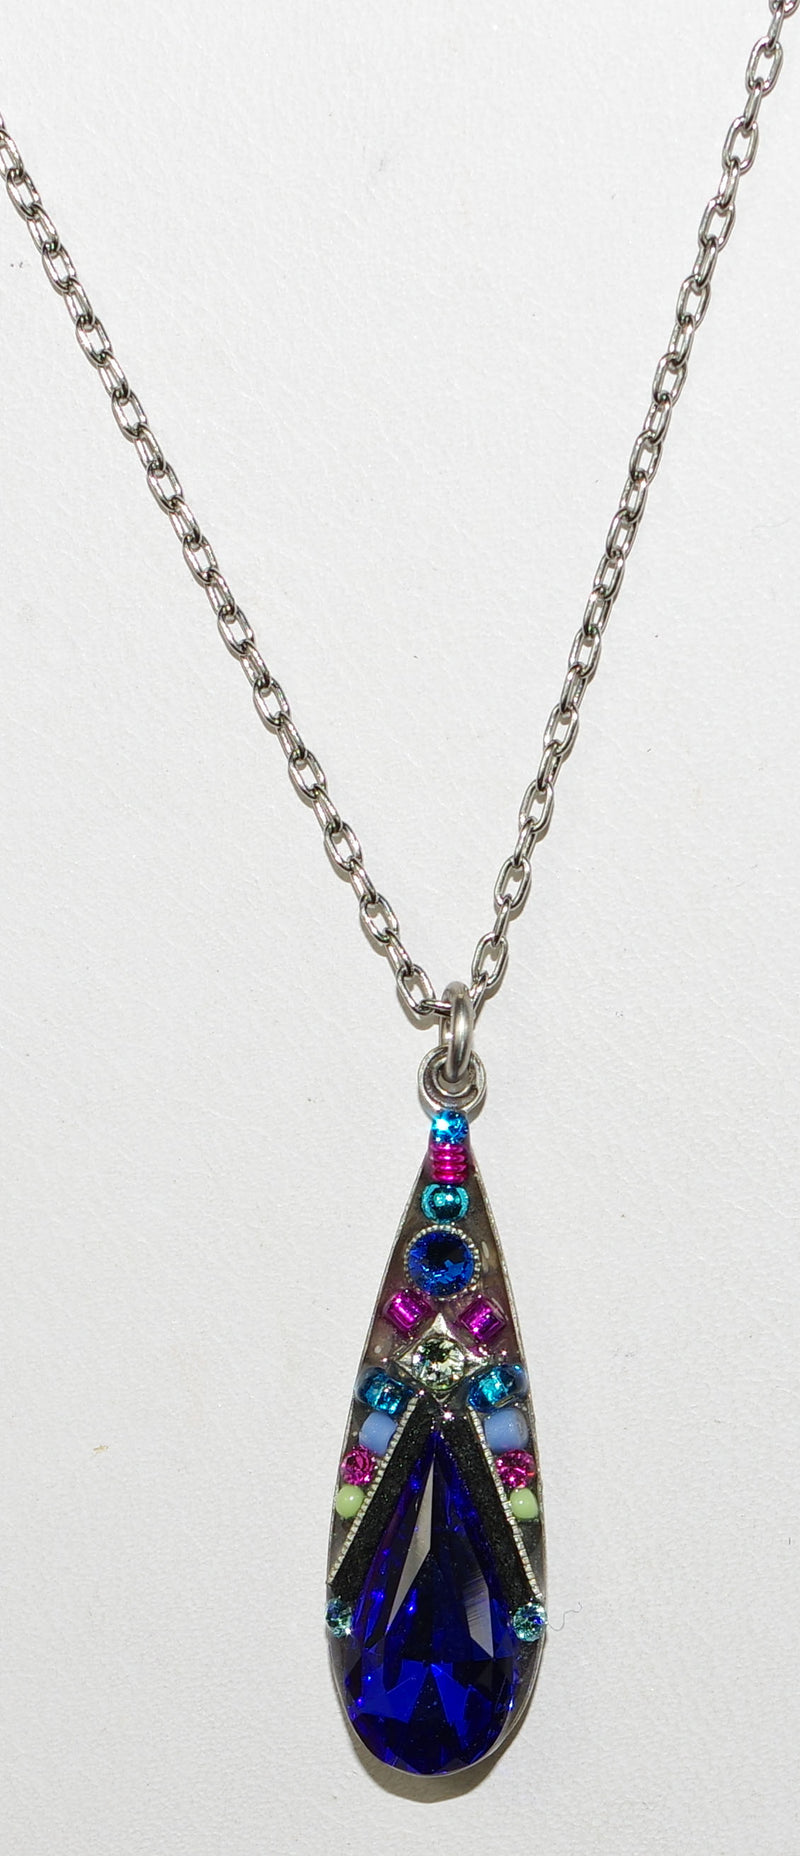 "FIREFLY NECKLACE CAMELLIA ROYAL BLUE: multi color stones in 1"" silver setting, 17"" adjustable chain"